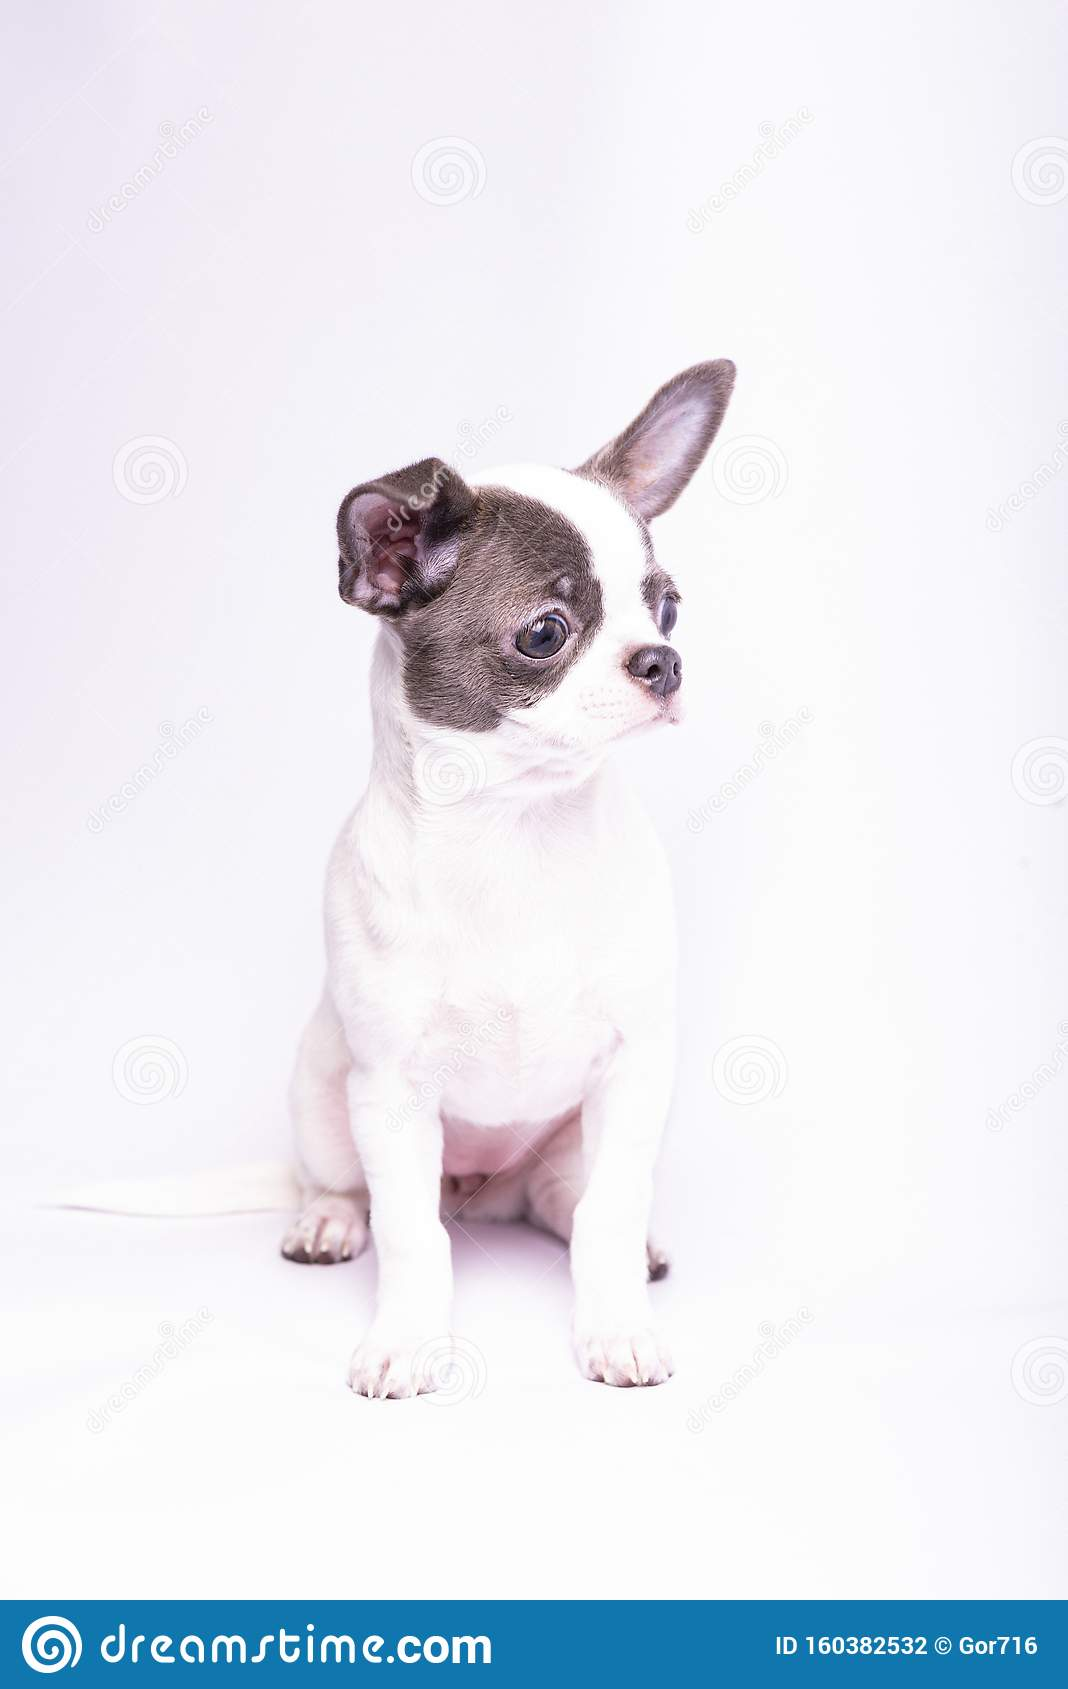 Chihuahua Puppy Studio Photography Of Small Dogs 2019 Stock Photo Image Of Canine Puppies 160382532